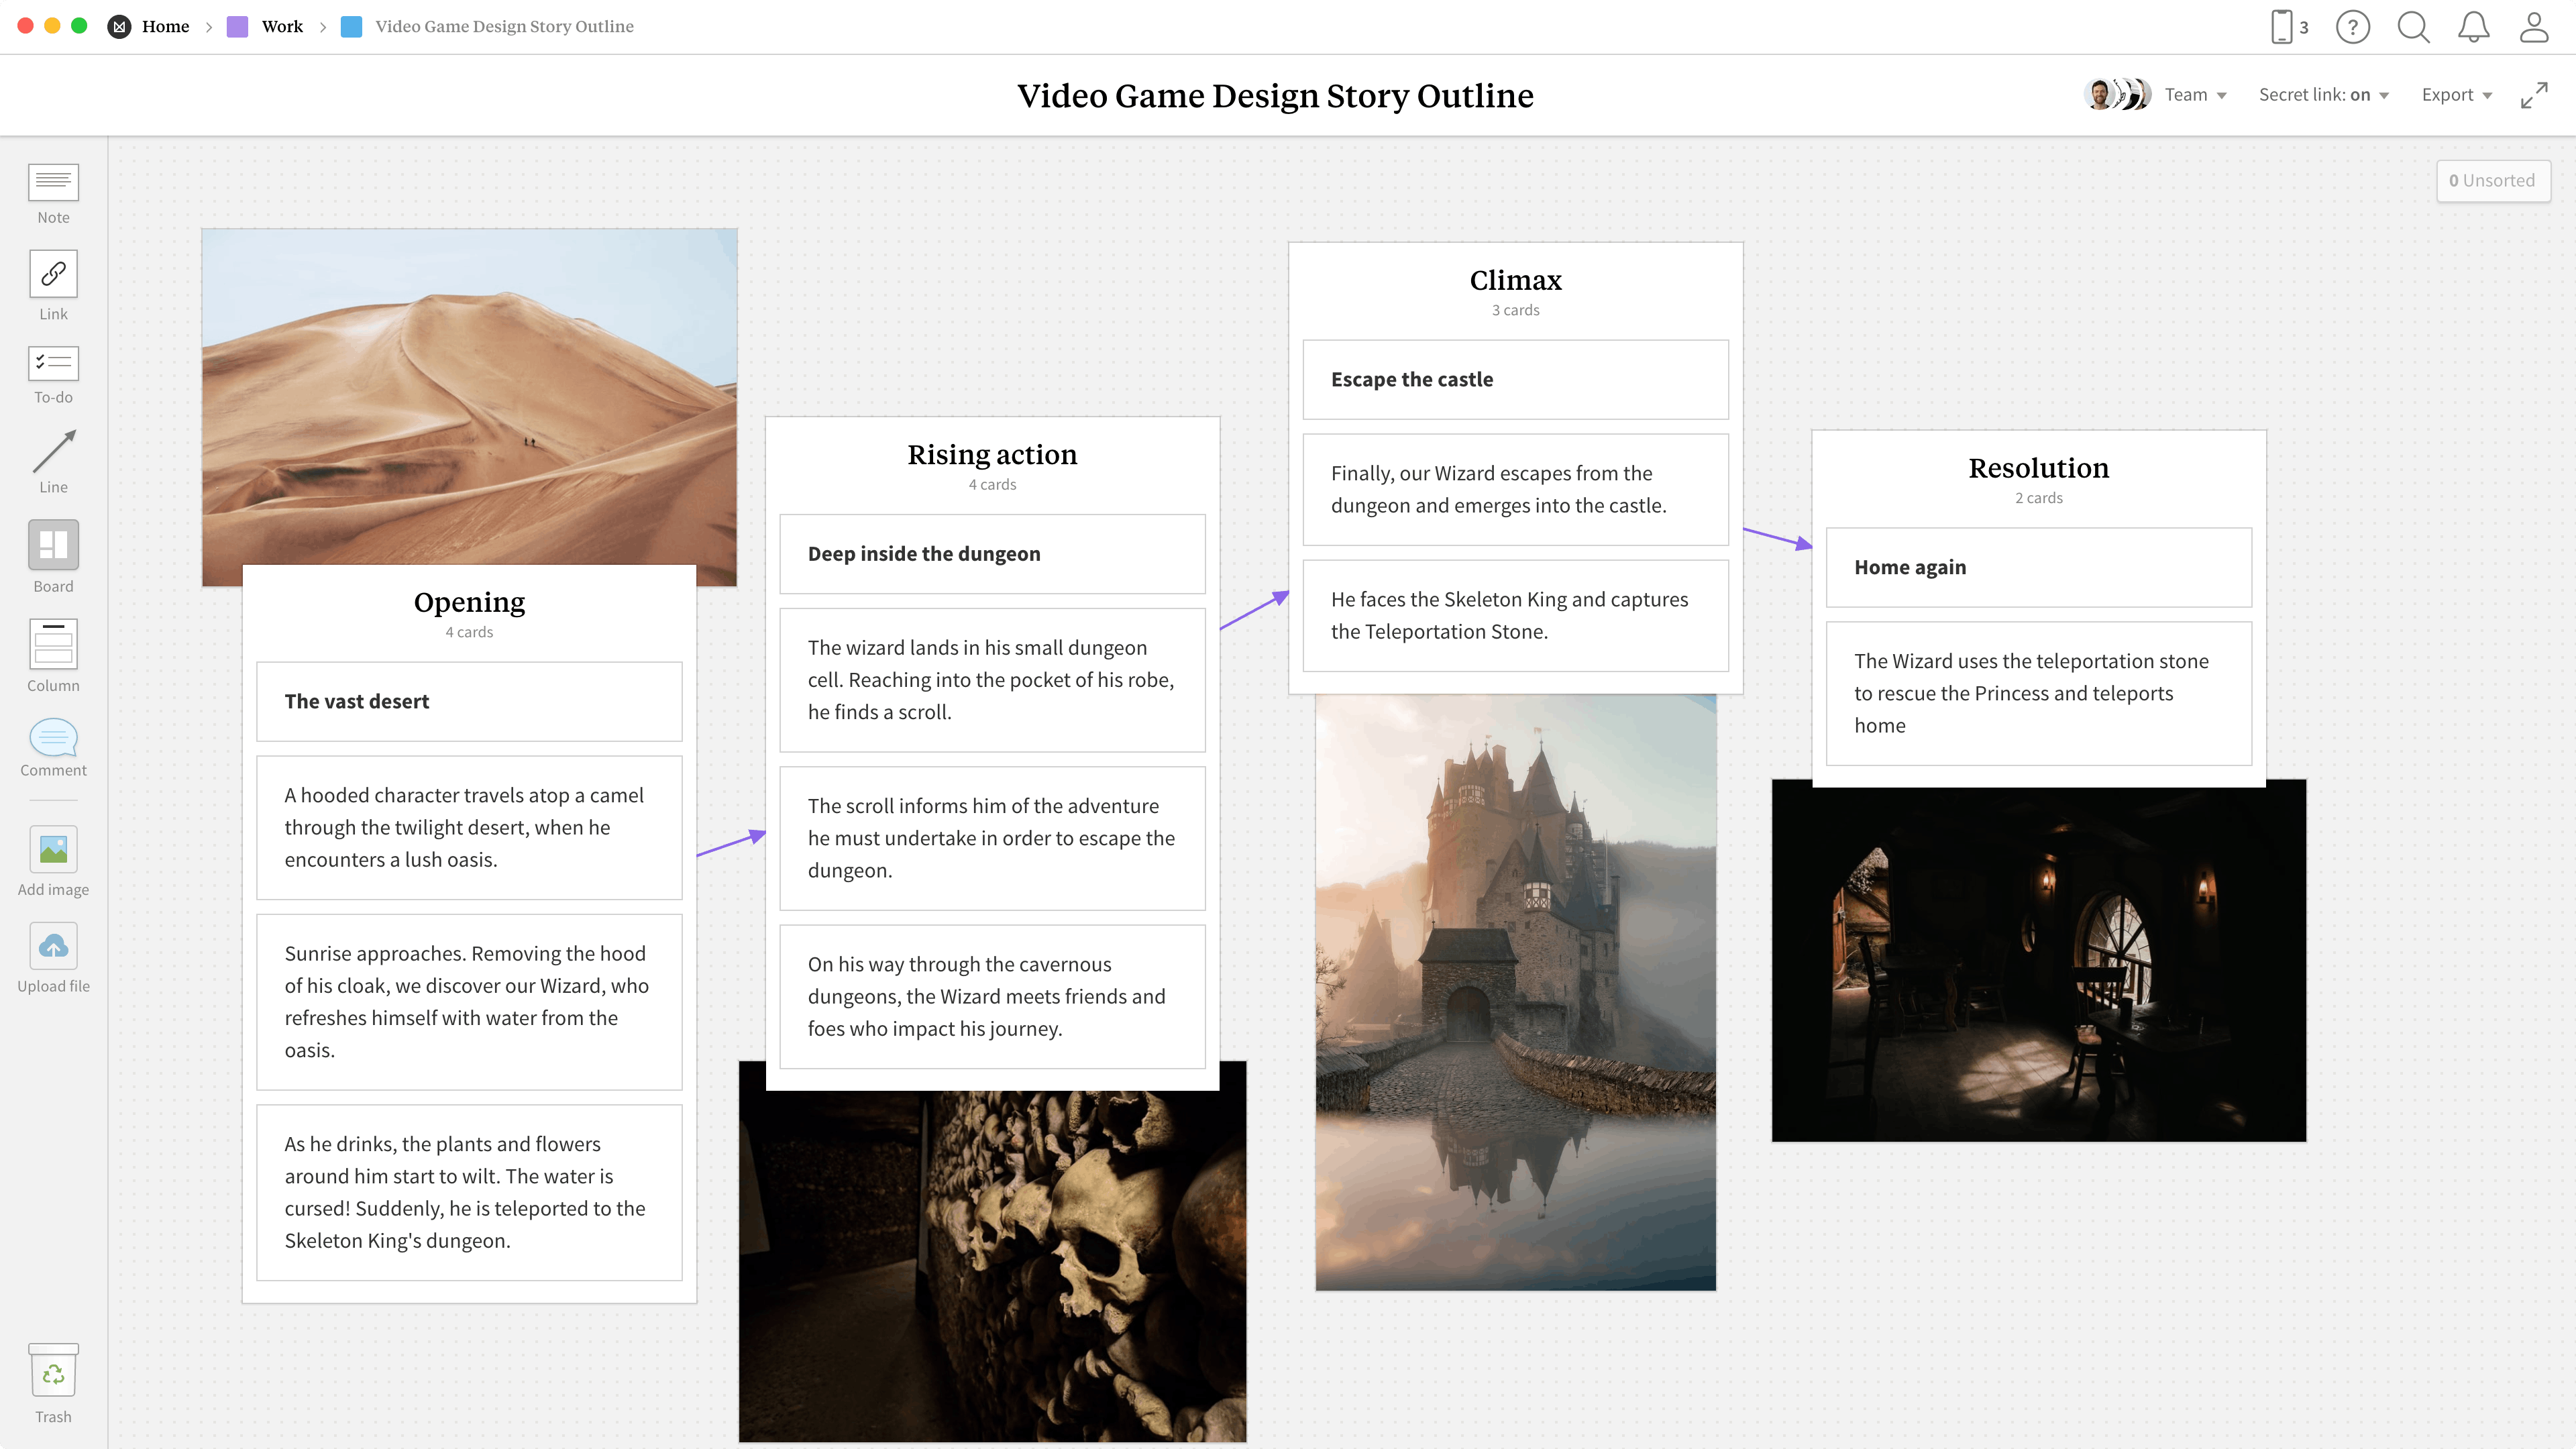 Completed Game Design Story Outline template in Milanote app